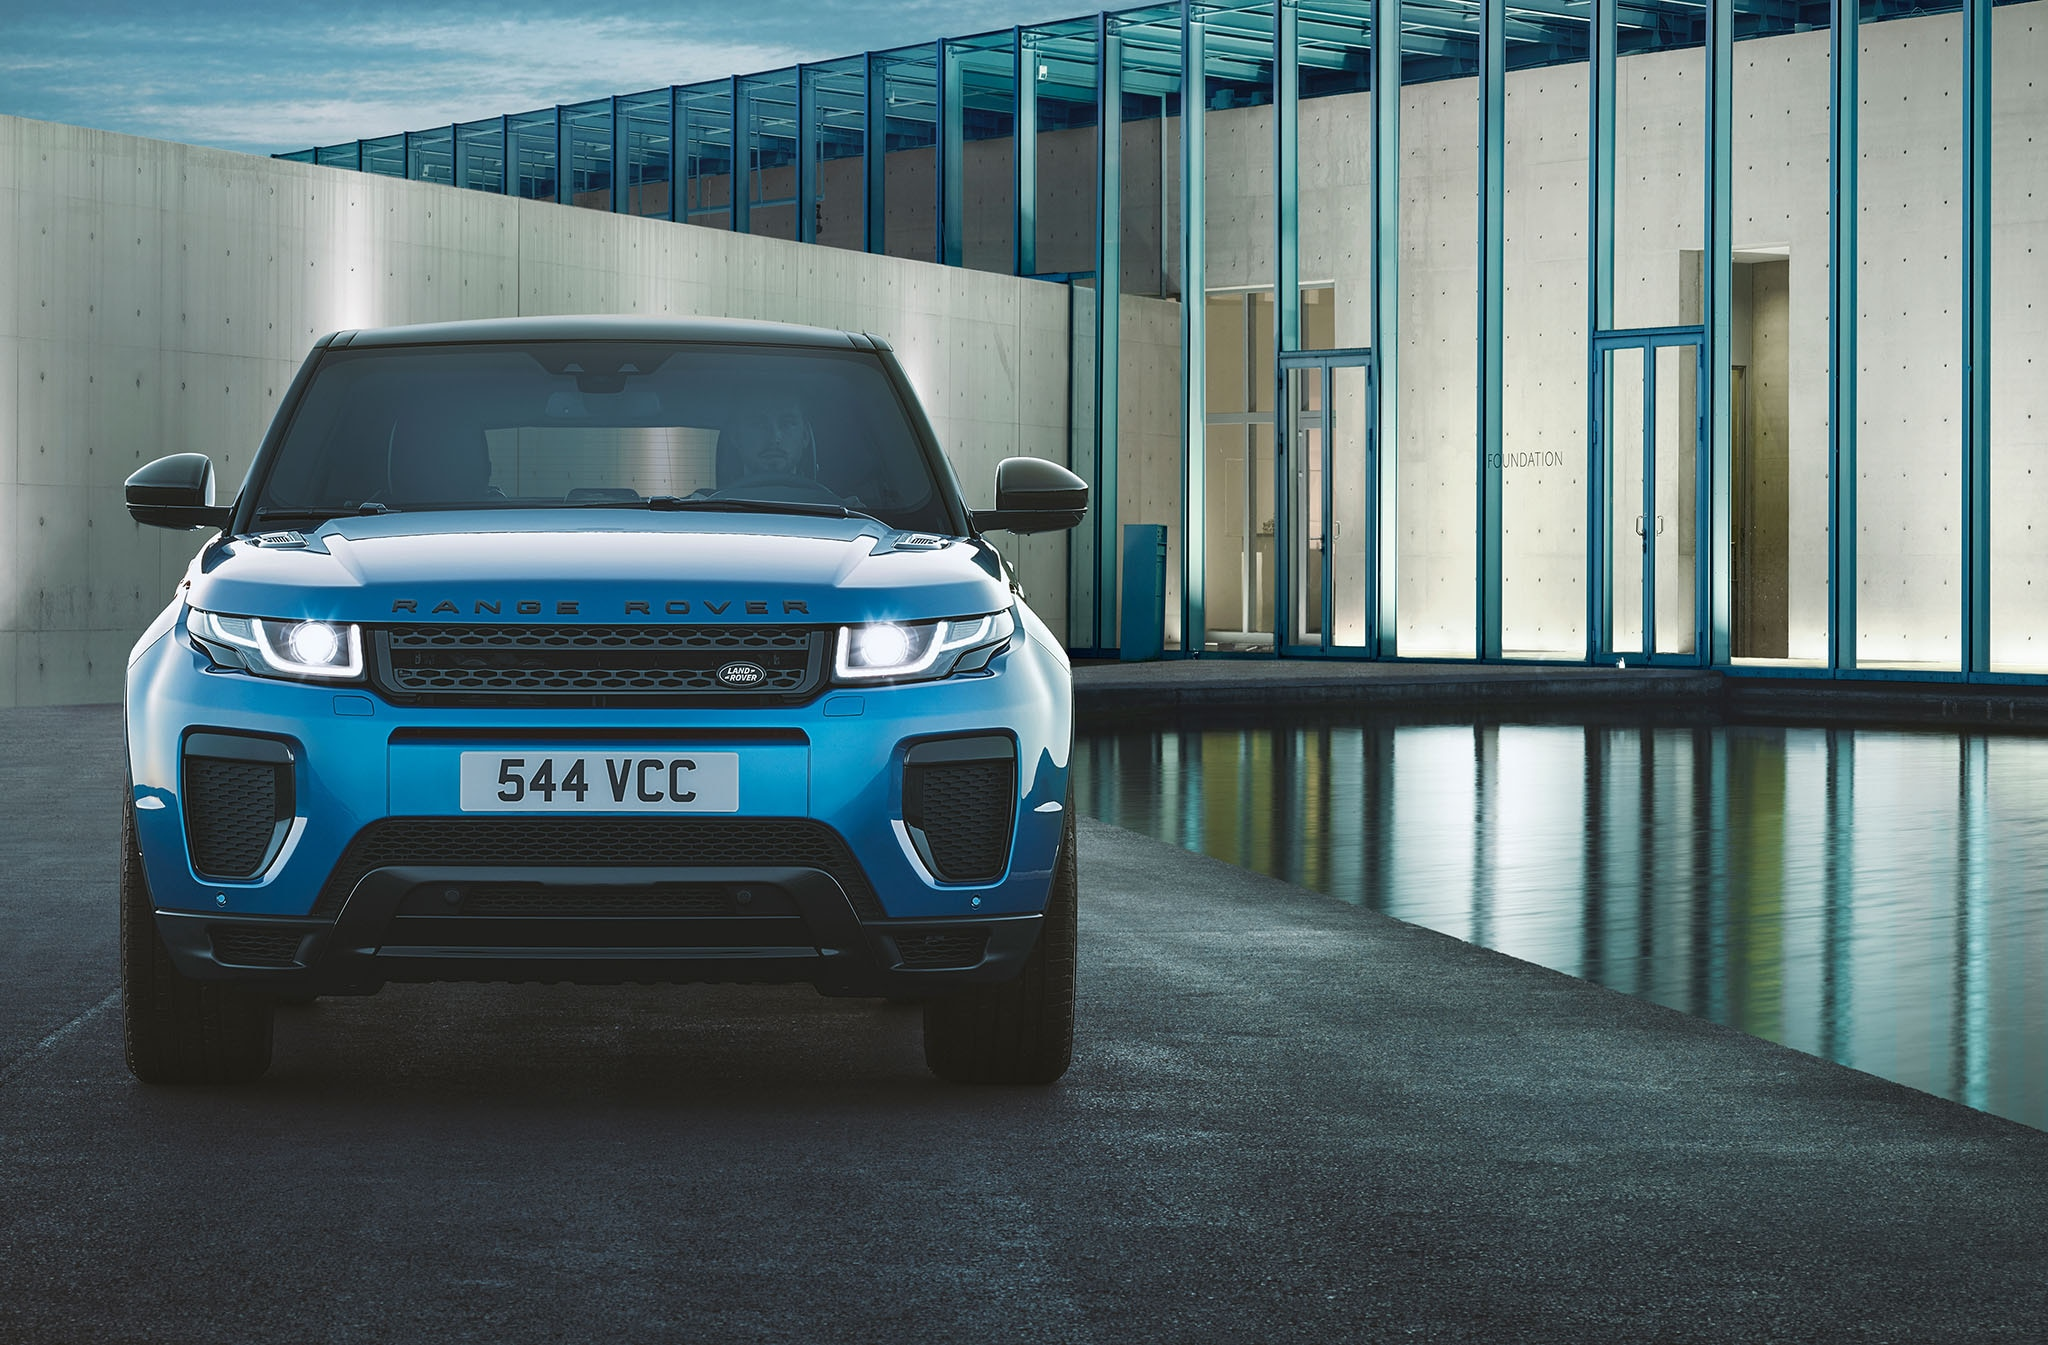 2018 Range Rover Evoque Adds More Horses Under the Hood ...